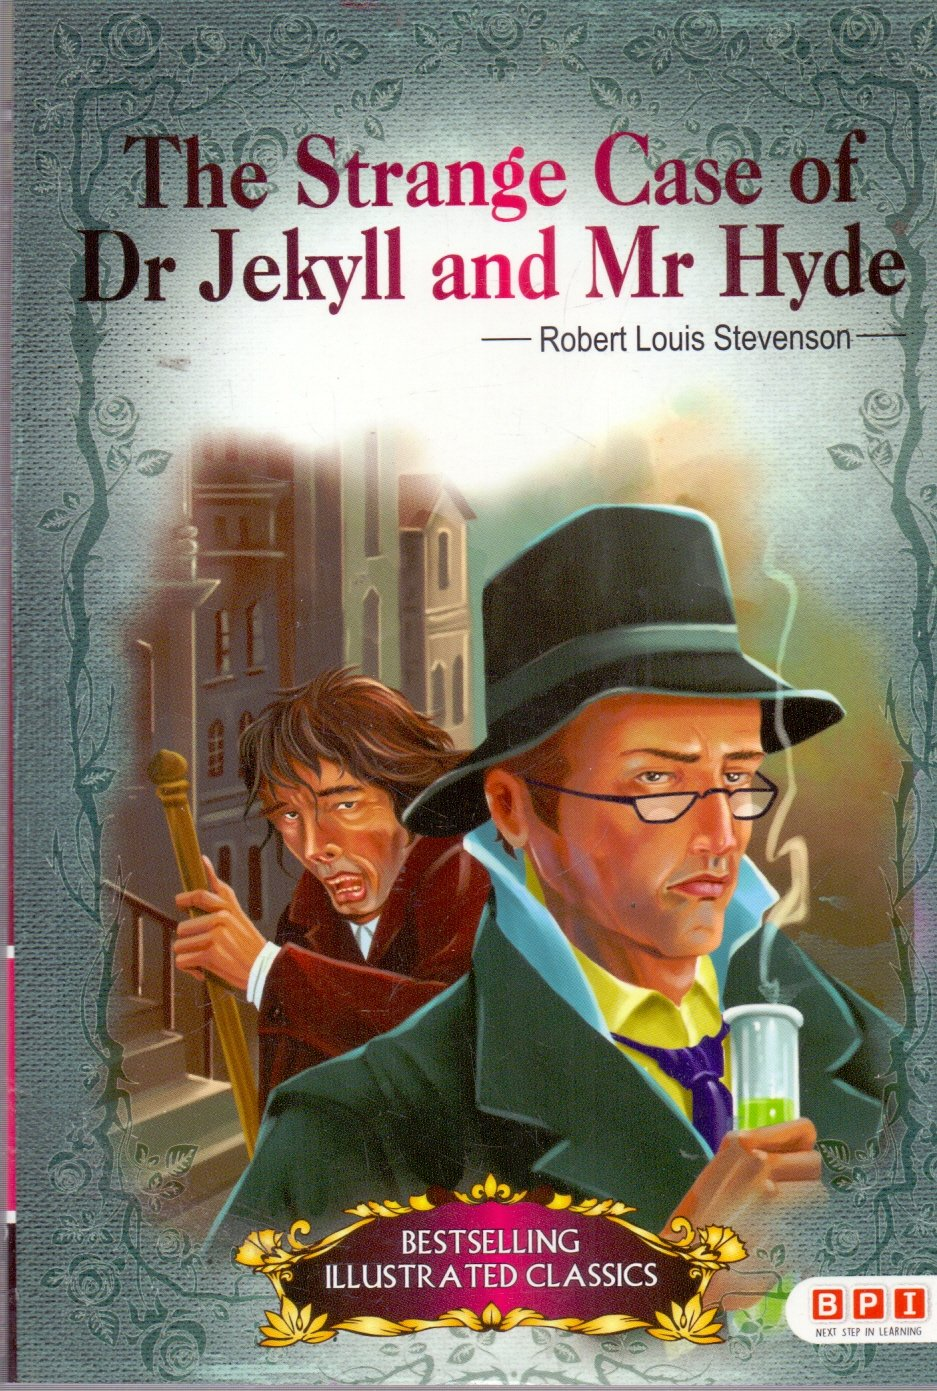 Bestselling Illustrated Classics: THE STRANGE CASE OF DR. JEKYLL AND MR. HYDE - Dover Thrift Editions